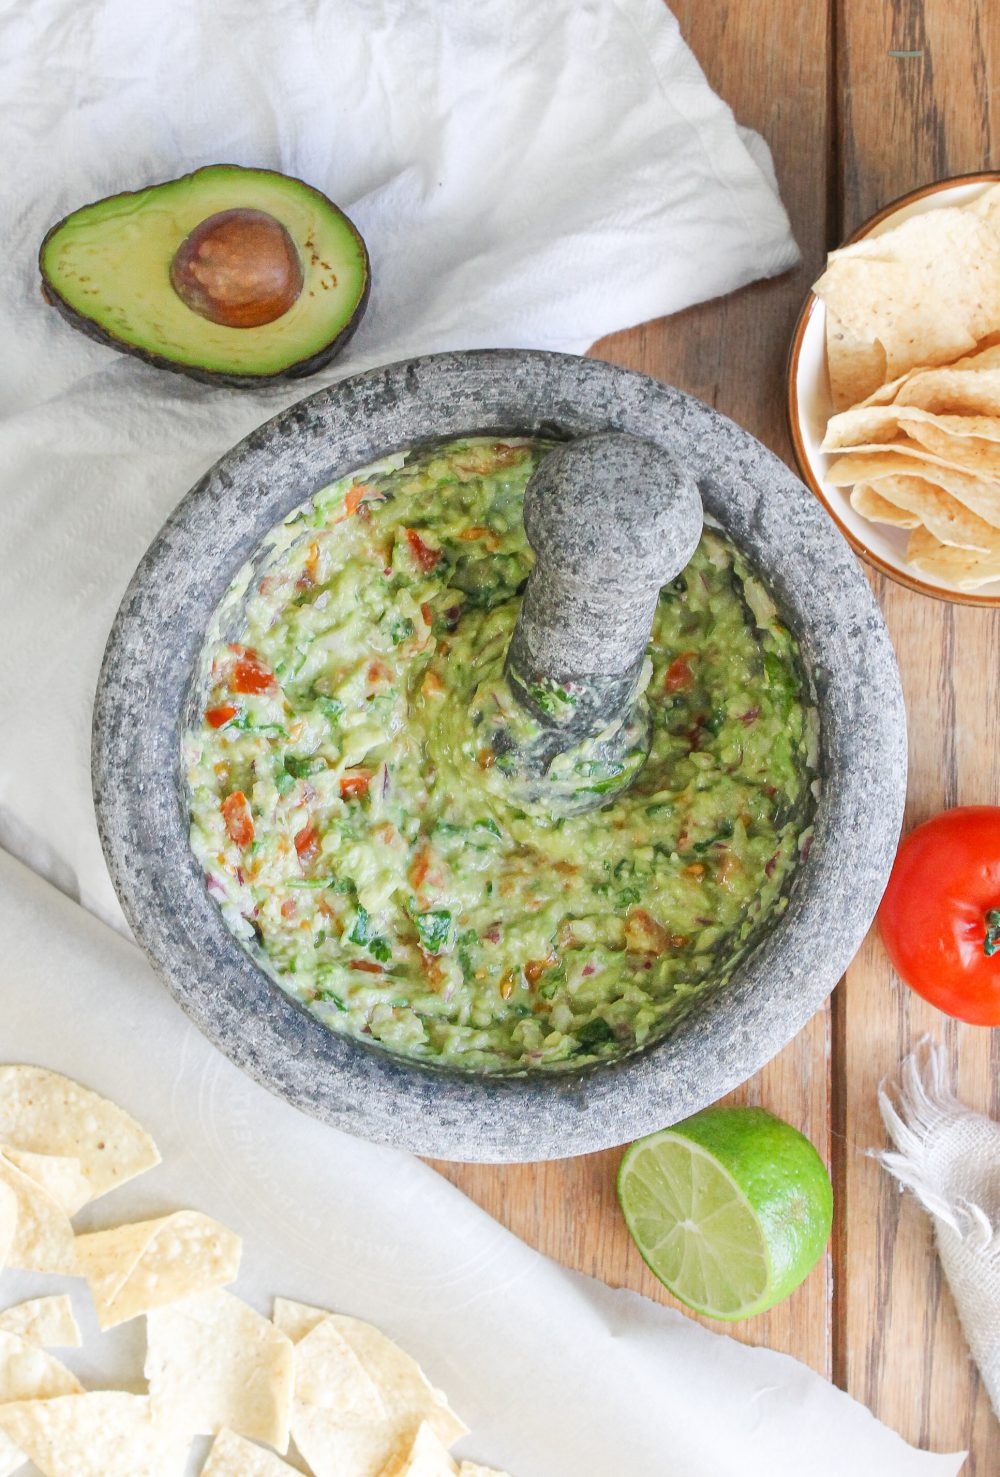 authentic guacamole with avocado, tomato, onion, lime juice, cilantro, organic corn chips in mortar and pestle